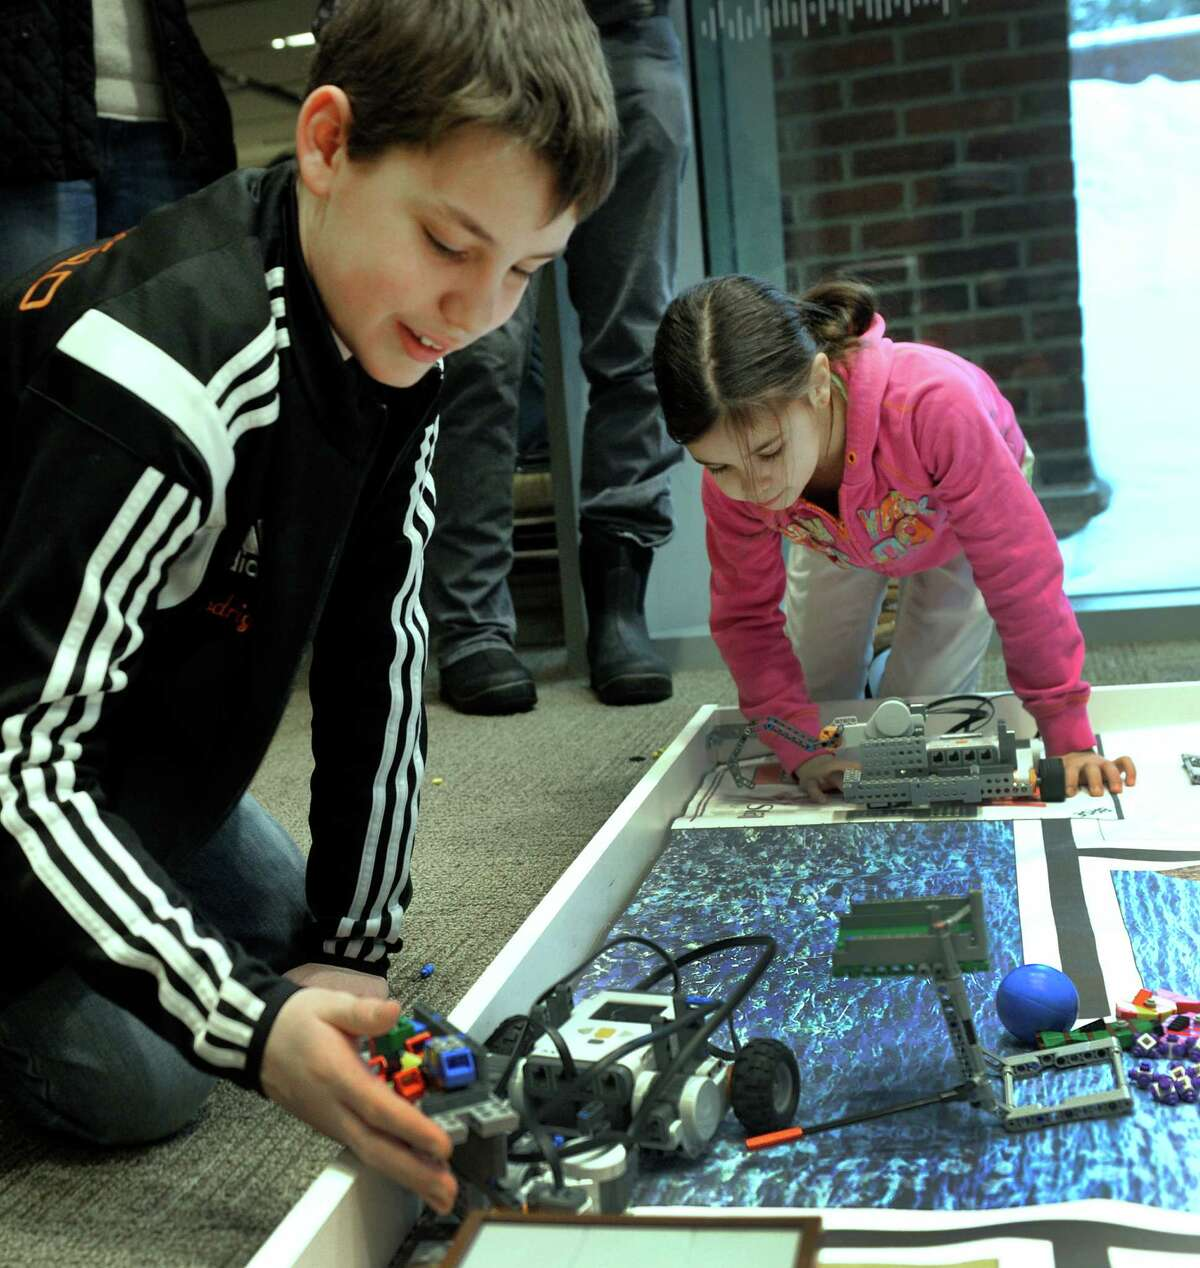 """Alec Rodriguez, 12, left, and Evia Rodriguez, 10, work their robots at a technology celebration called """"Hour of Code"""" at the Ridgefield Library Saturday, February 7, 2015. Kids in the library's Robotic Club who built robots and developed the program codes that make them function, demonstrated them Saturday."""